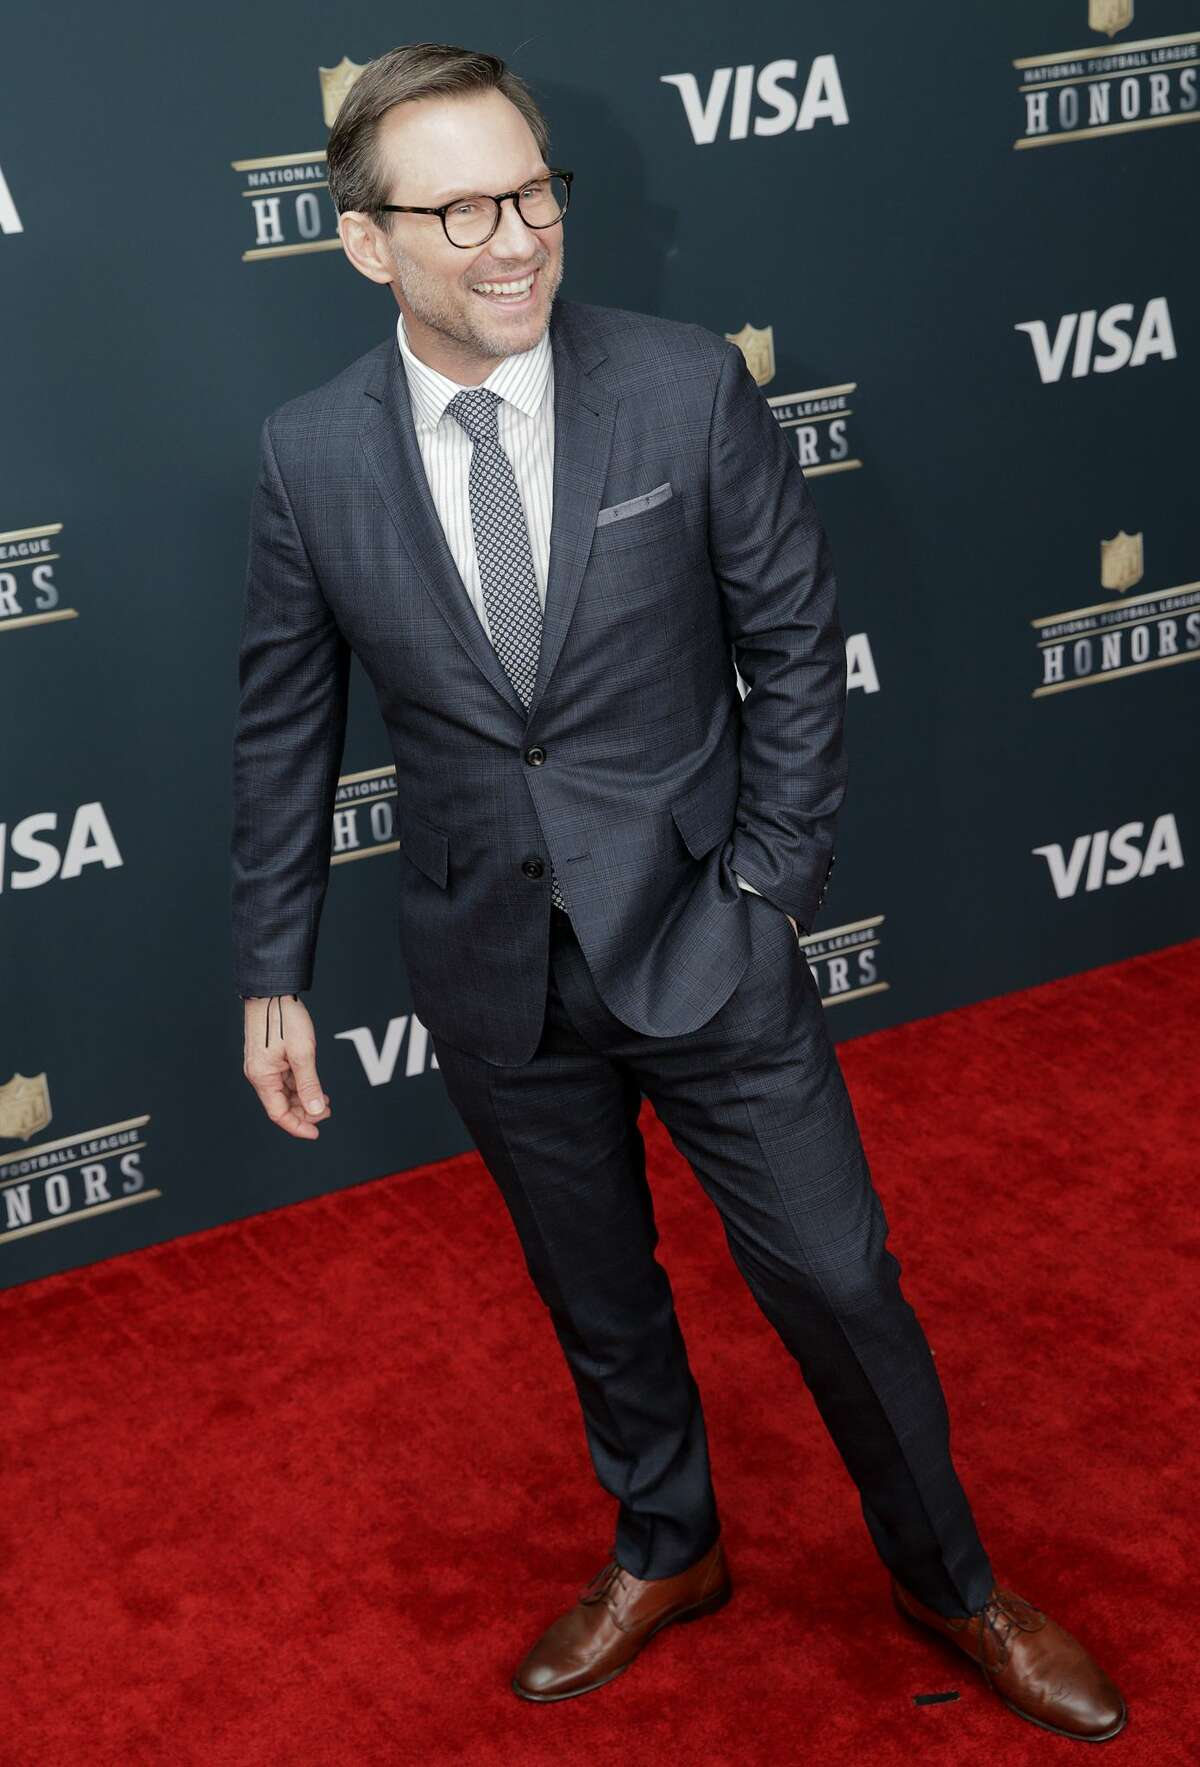 Christian Slater on the red carpet of the NFL honors night at the Wortham Theater Center on Saturday, Feb. 4, 2017, in Houston. ( Elizabeth Conley / Houston Chronicle )